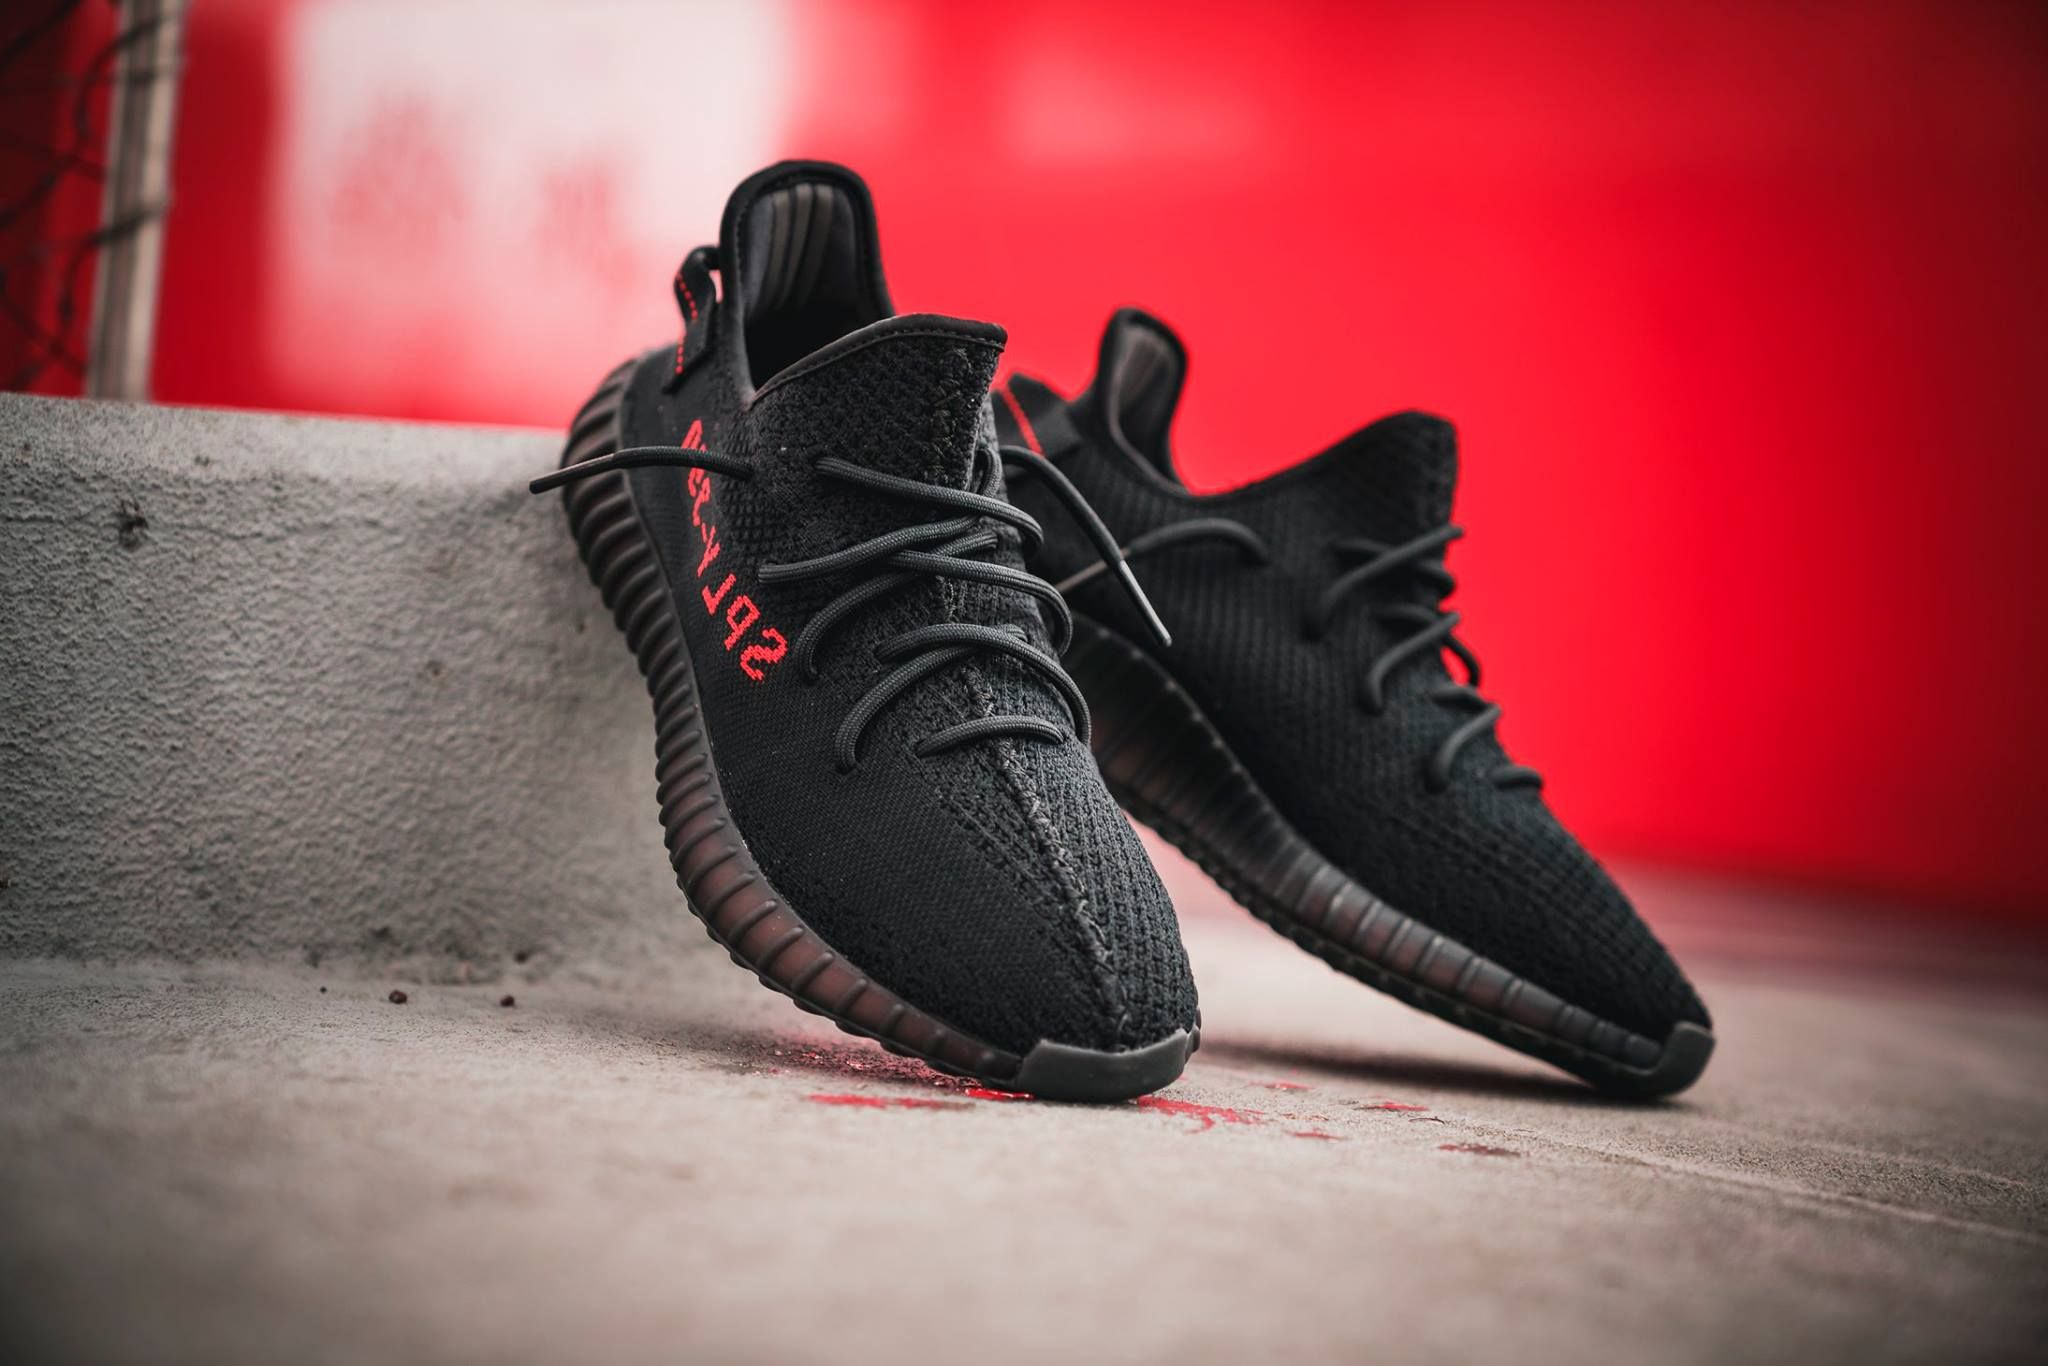 adidas yeezy boost white black red grey adidas running shoes for women